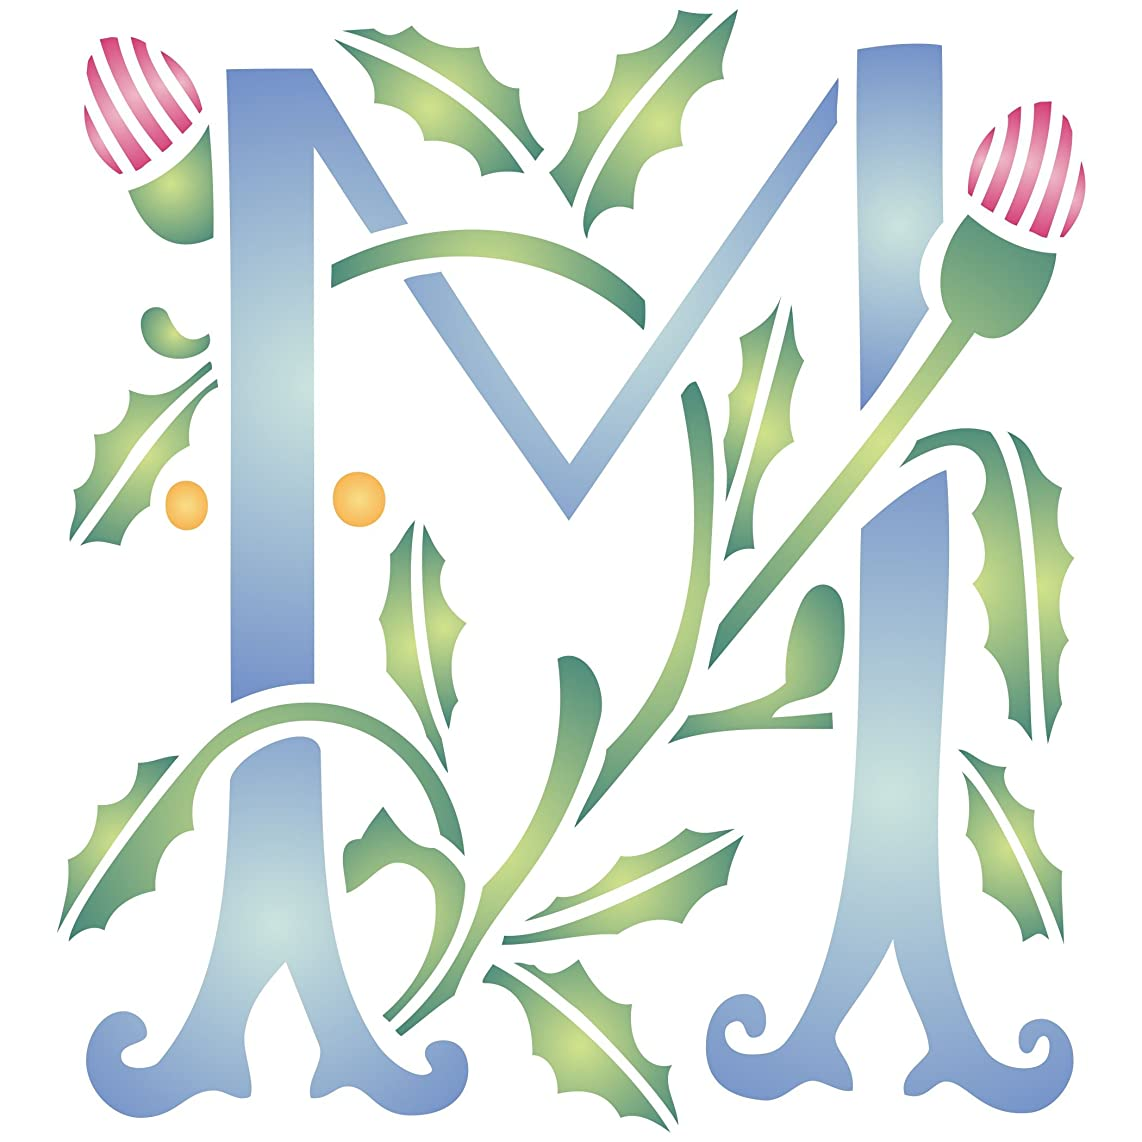 """Monogram M Stencil (size 6.5""""w x 7""""h) Reusable Stencils for Painting - Best Quality Letter Wall Art Décor Ideas - Use on Walls, Floors, Fabrics, Glass, Wood, Cards, and More…"""